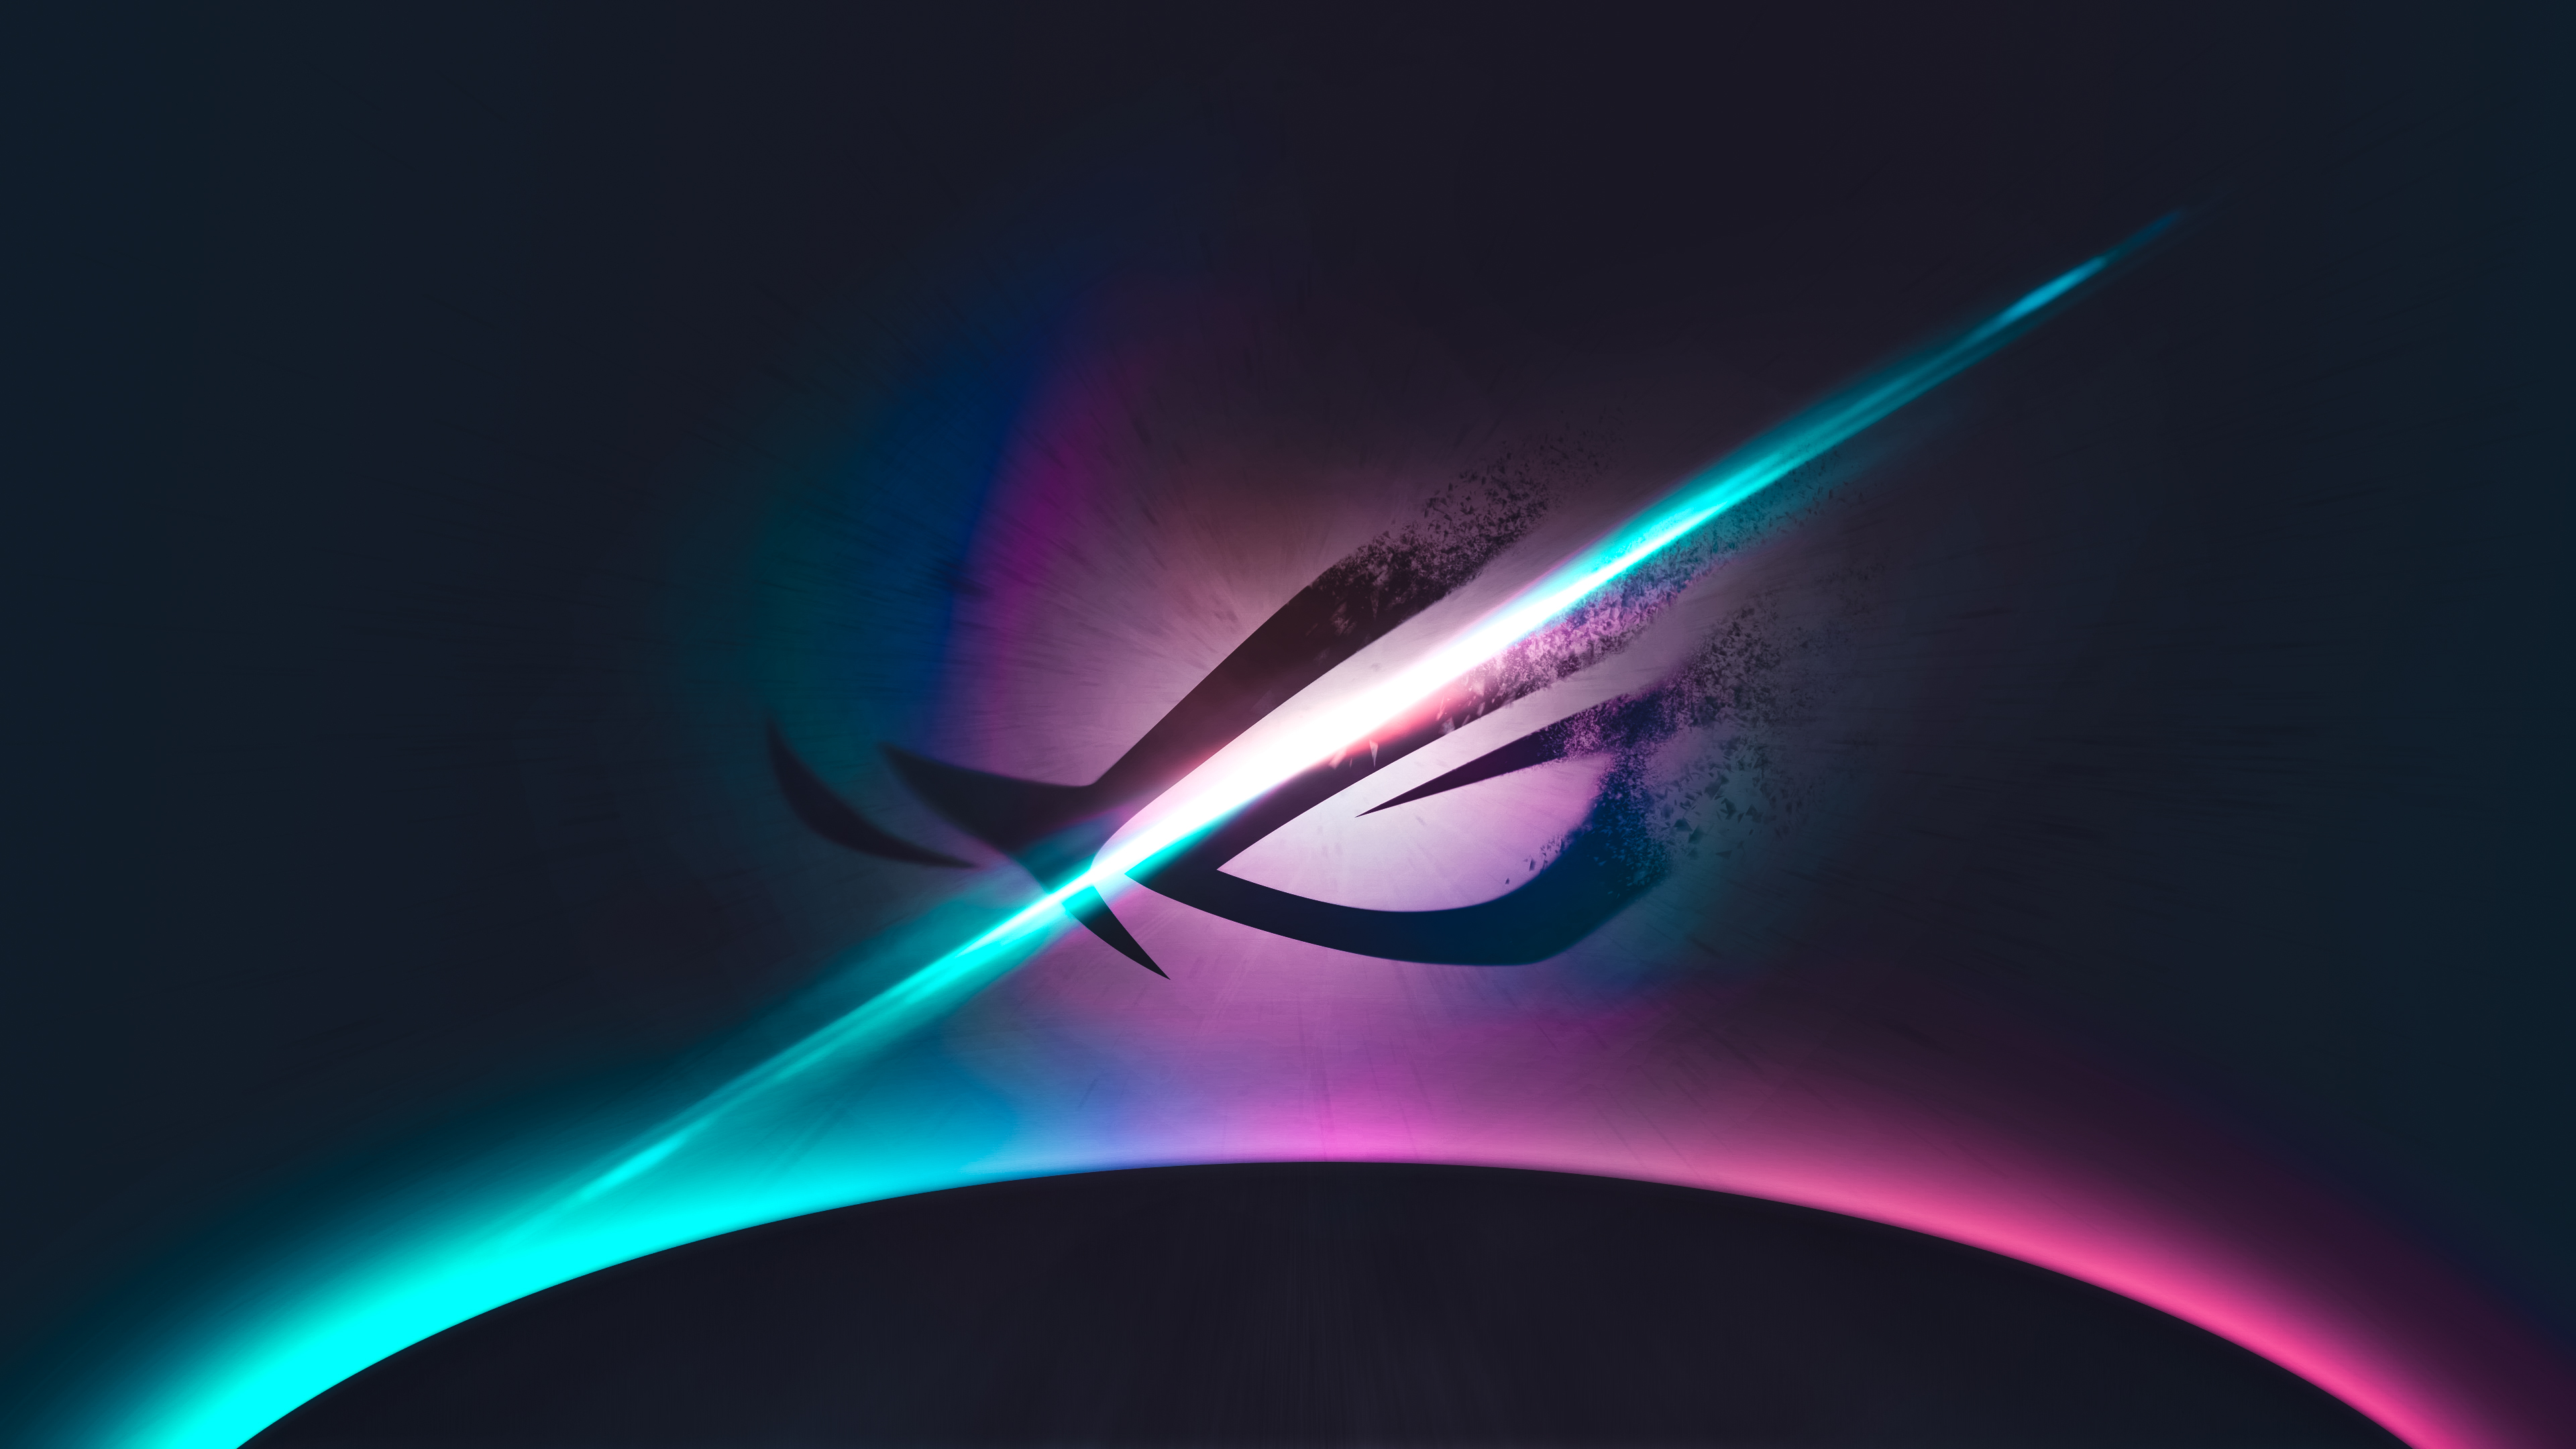 asus rog republic of gamers 4k wallpapers | hd wallpapers